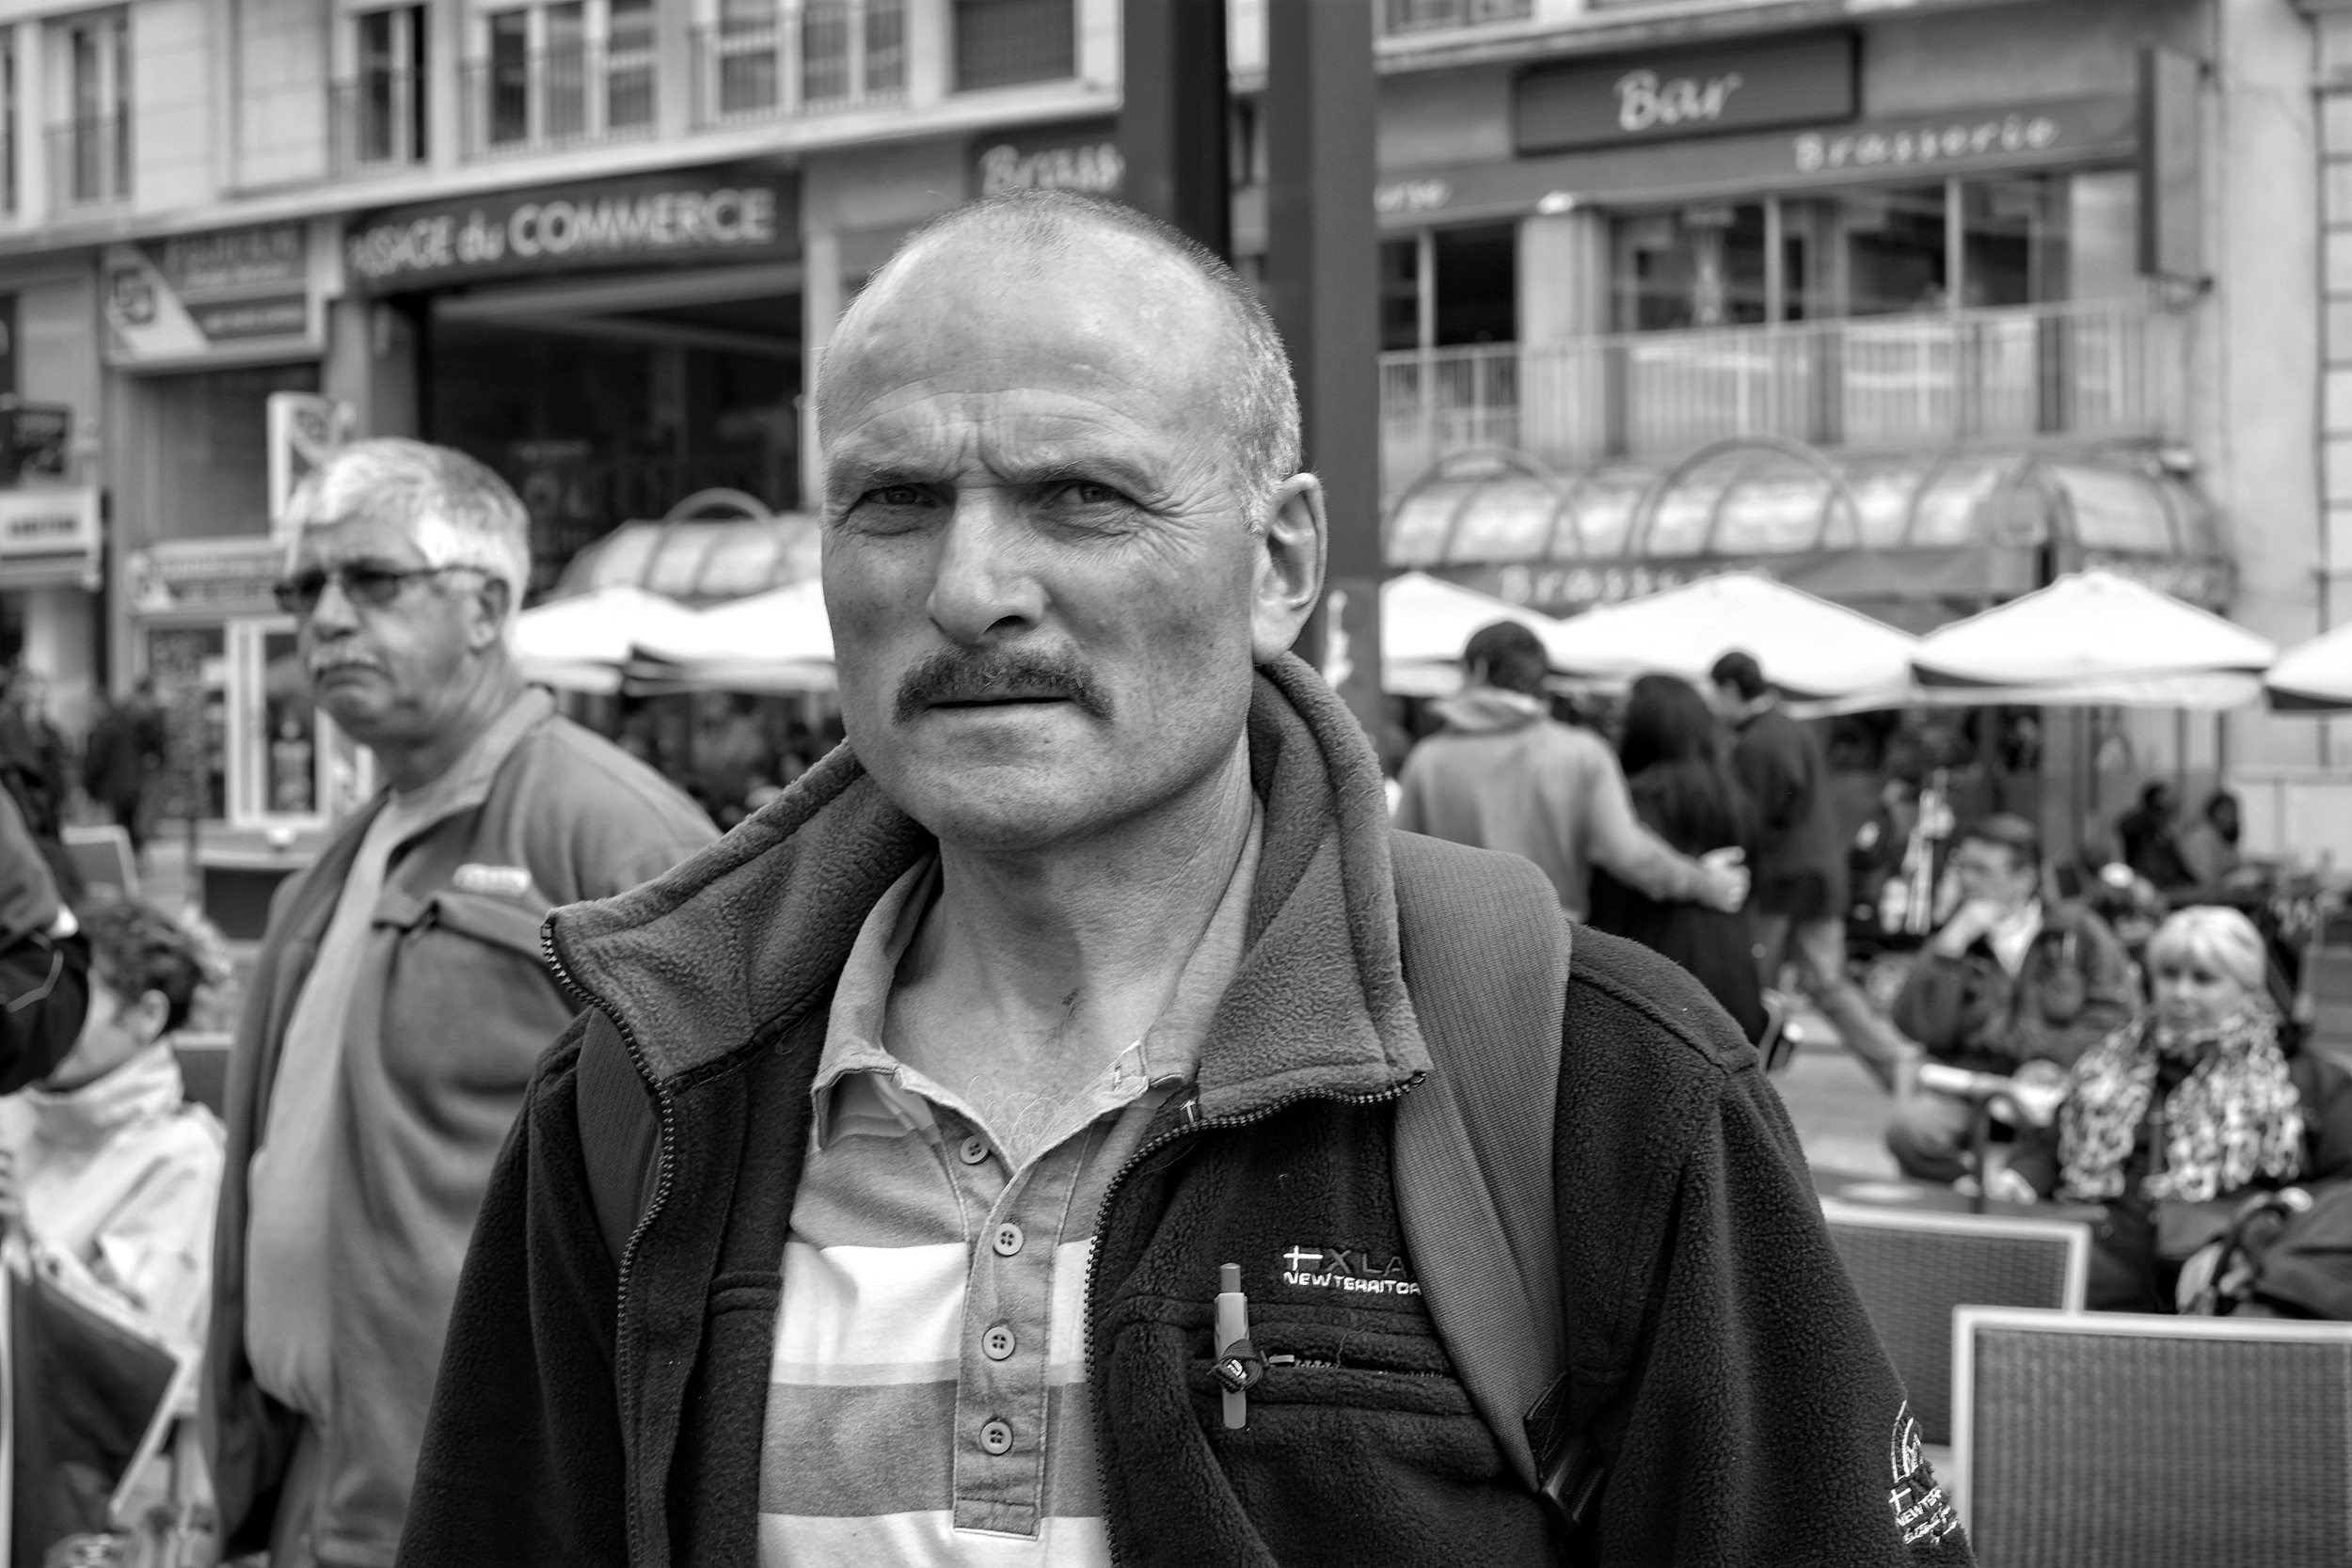 Man walking in Le Mans - Fuji X-Pro1